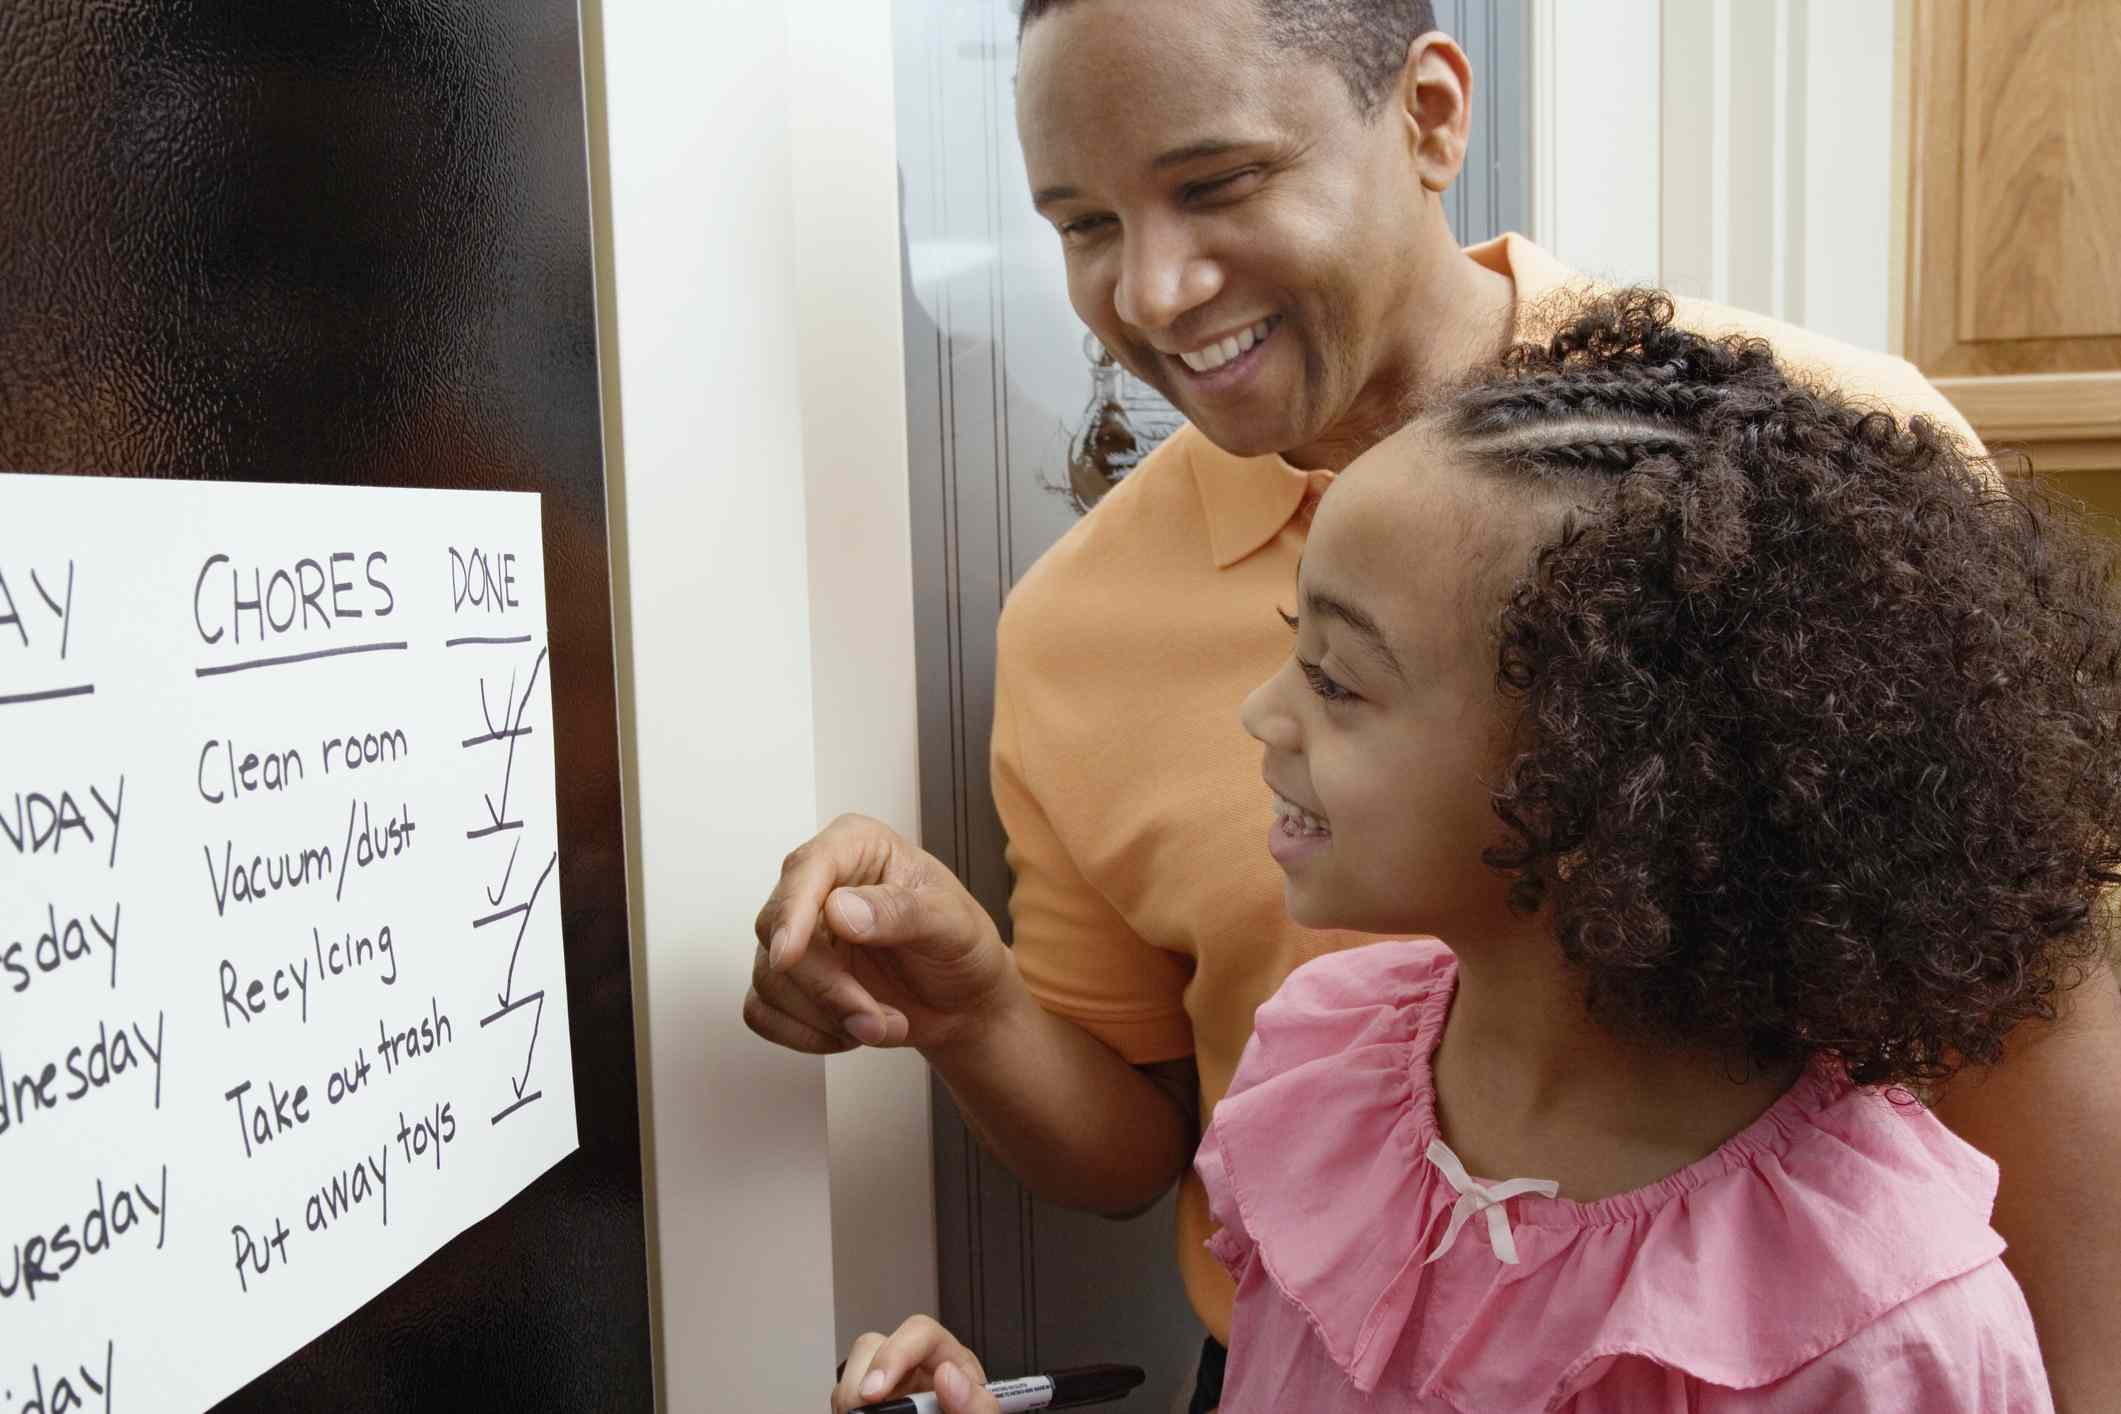 dad and daughter making a chore list